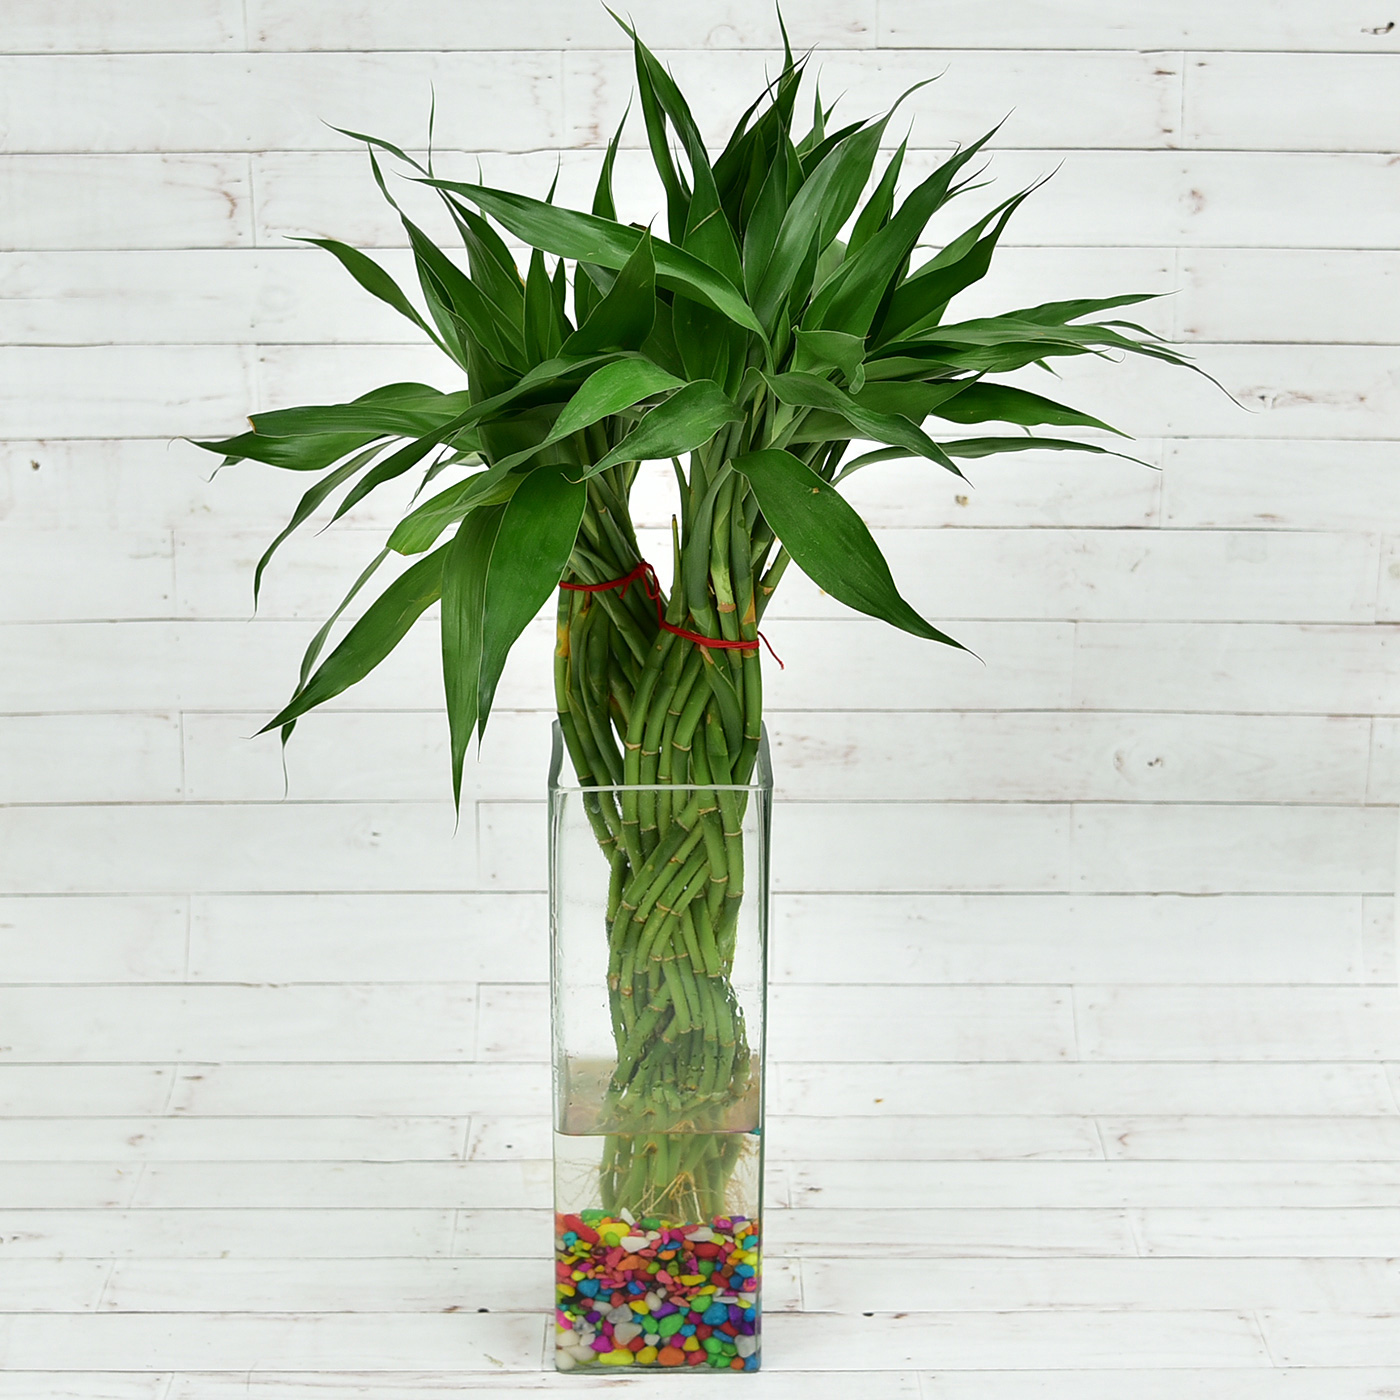 Lovely-Twin-Braided-Bamboo-Plant-In-A-Long-Glass-Vase